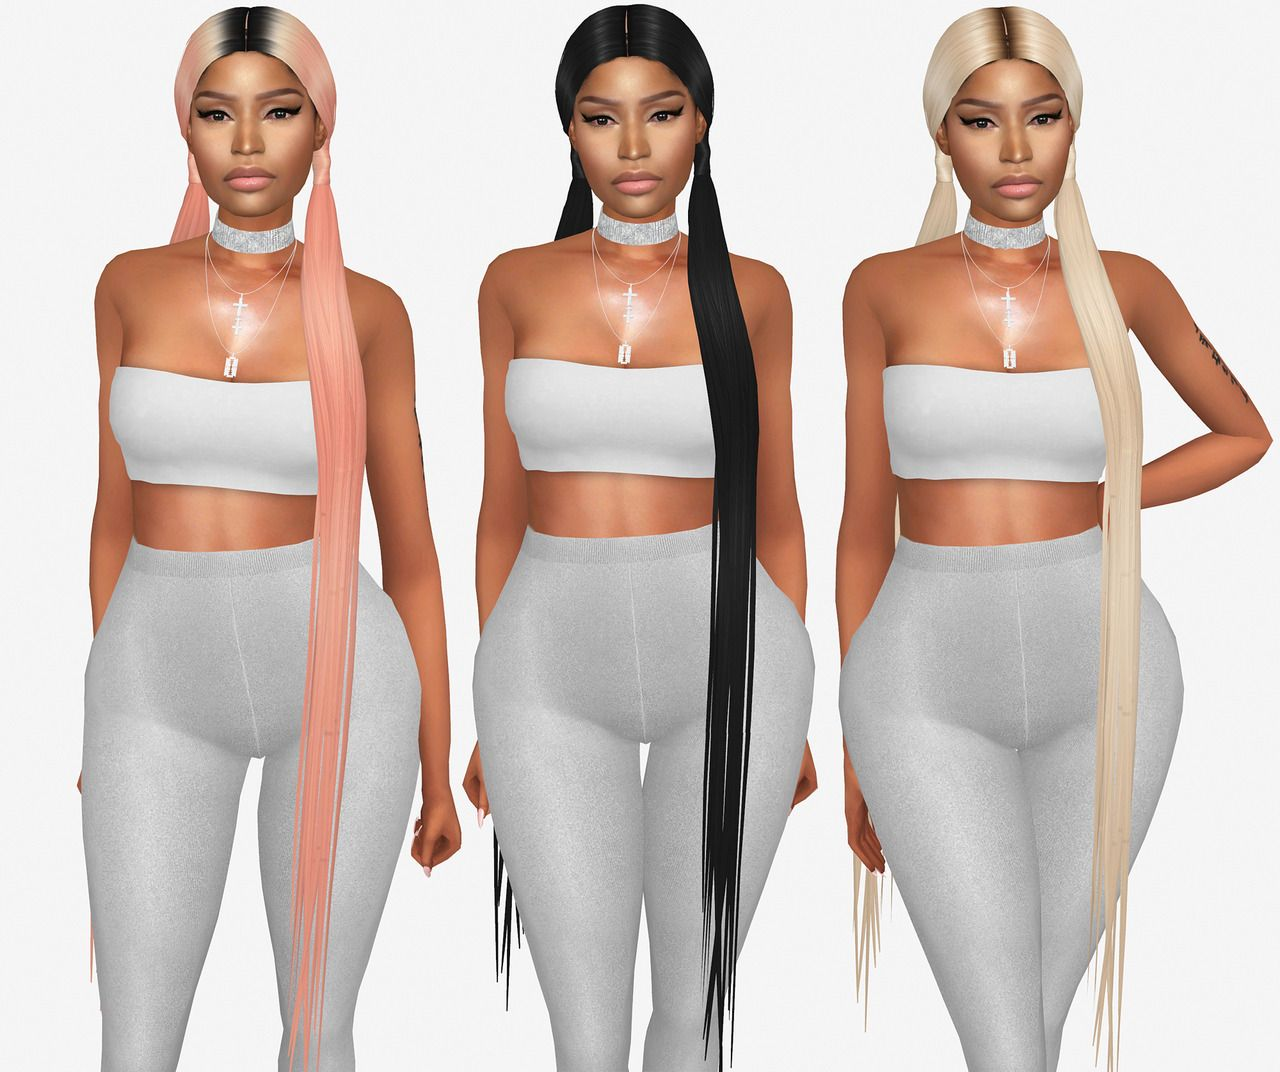 Sims superbabes #15